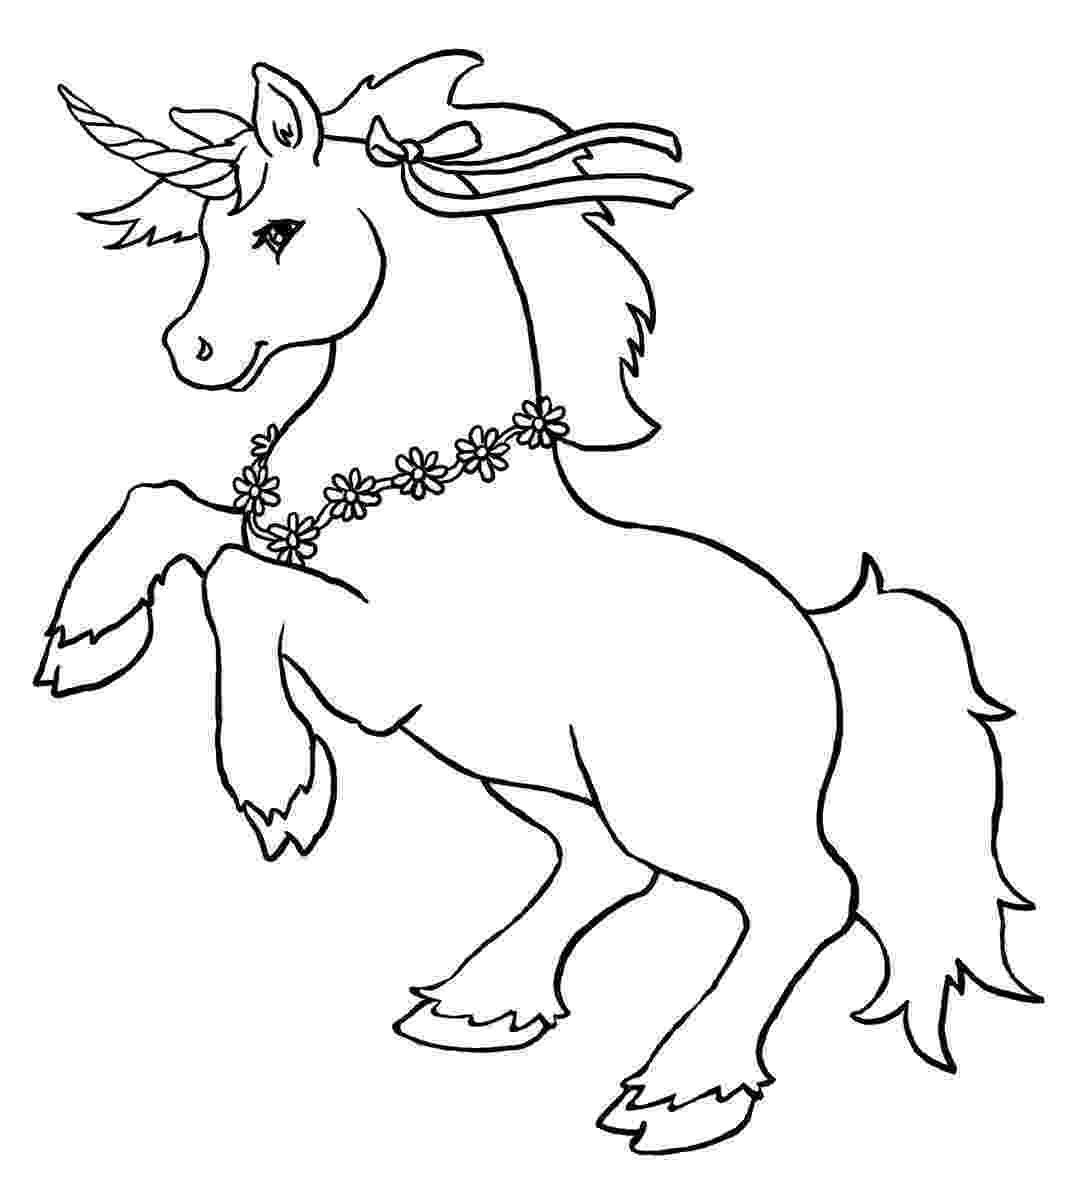 printable unicorn free printable unicorn coloring pages for kids printable unicorn